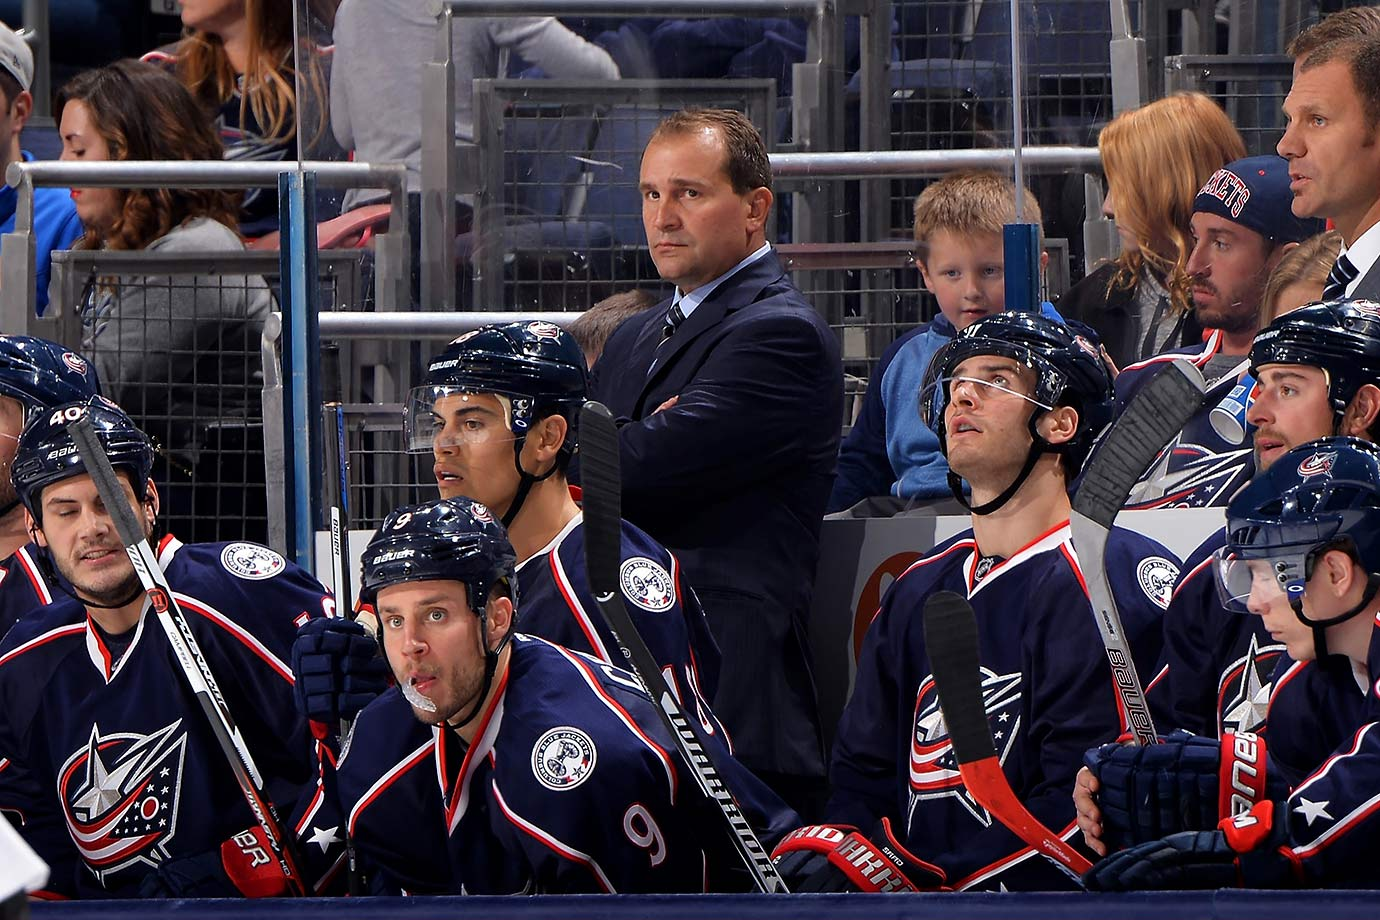 After an 0-7 start to the season, the Blue Jackets fired head coach Todd Richards and hired John Tortorella to fill the position. Richards began his first stint as a head coach in 2009 with the Minnesota Wild before joining Columbus for the 2011–12 season. Under Richards, the Blue Jackets qualified for the postseason once (in the 2013–14 season), but lost during the first round.